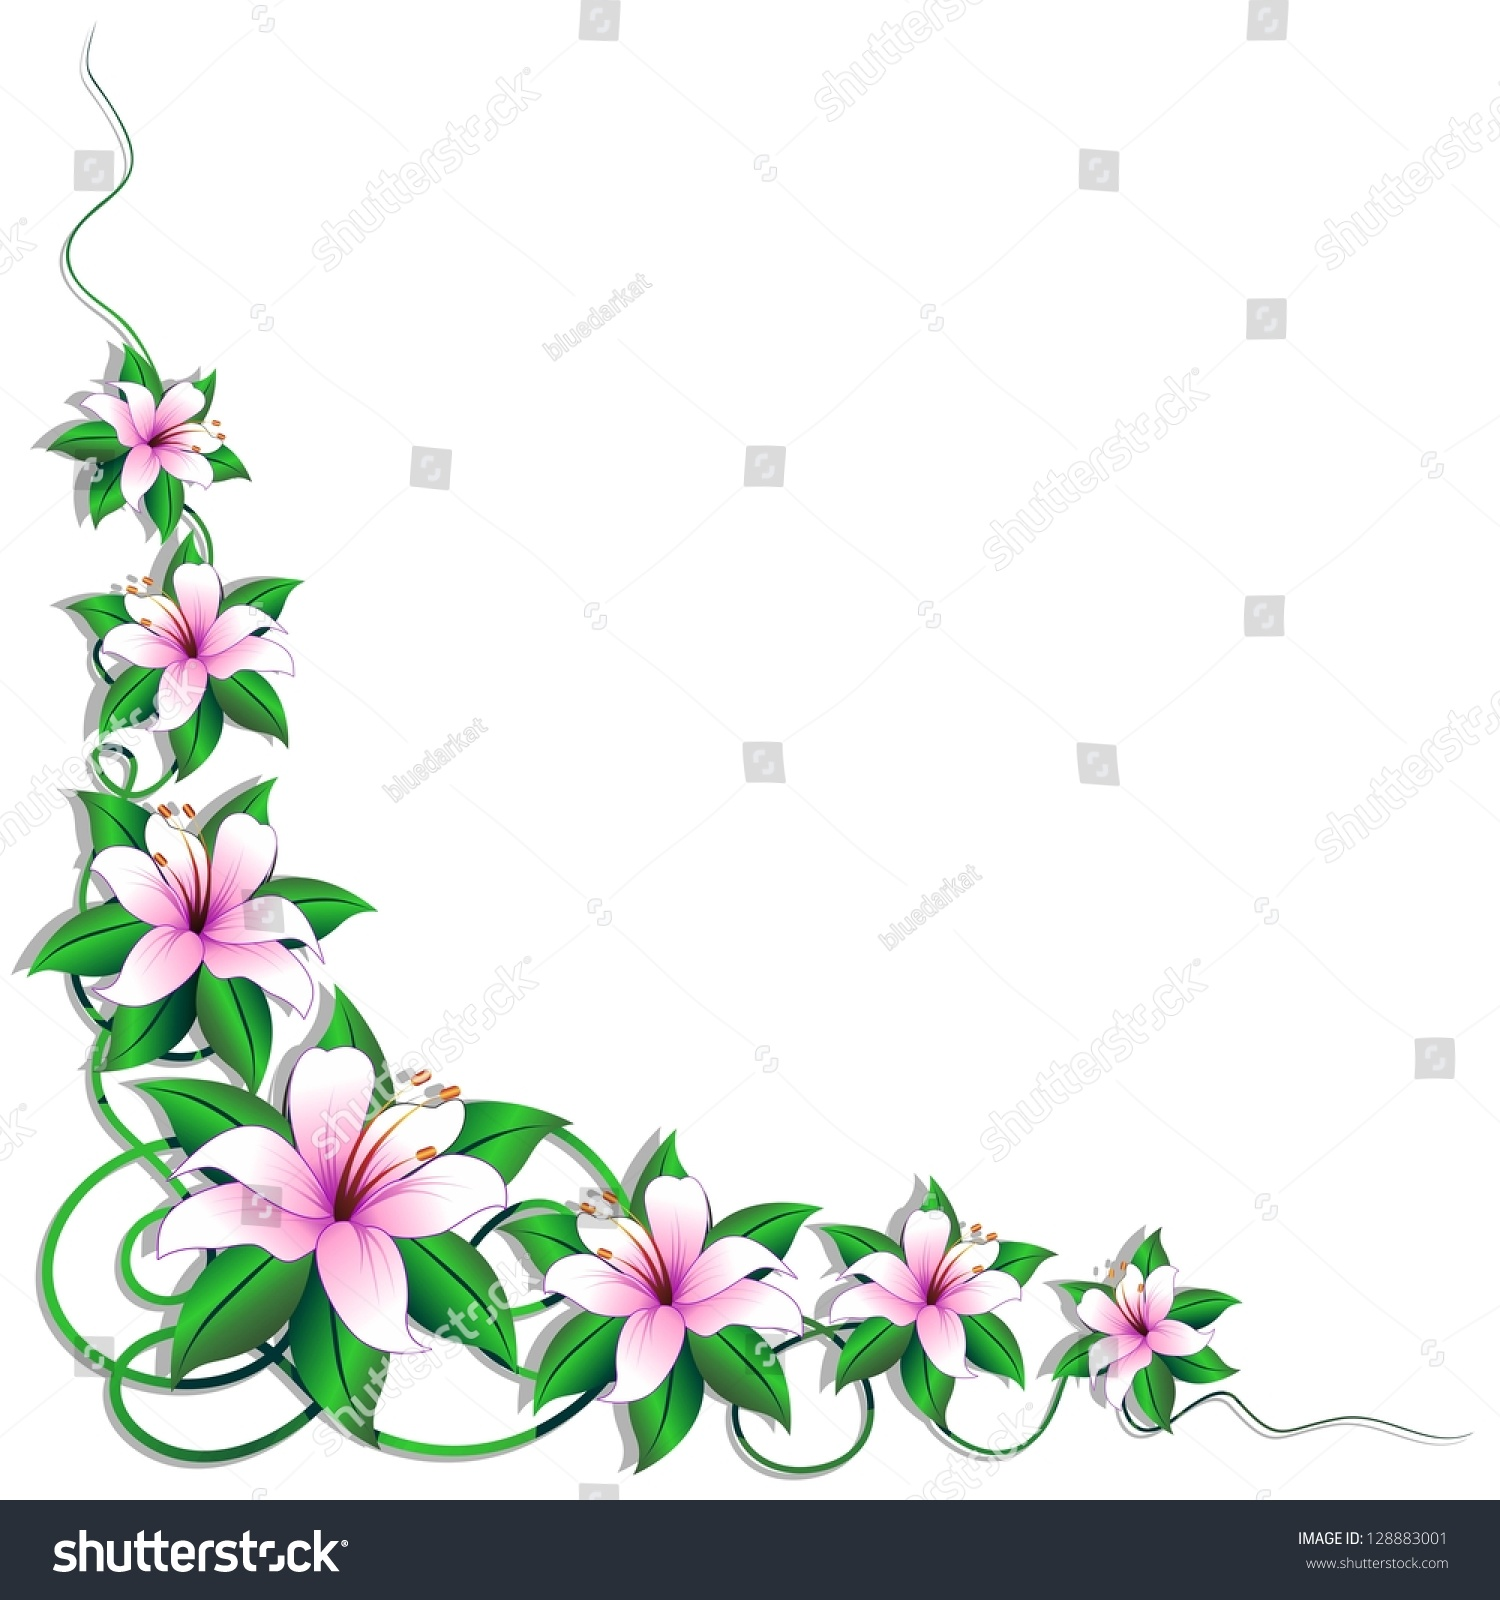 Pink lily flower page corner decoration stock photo for Decoration page